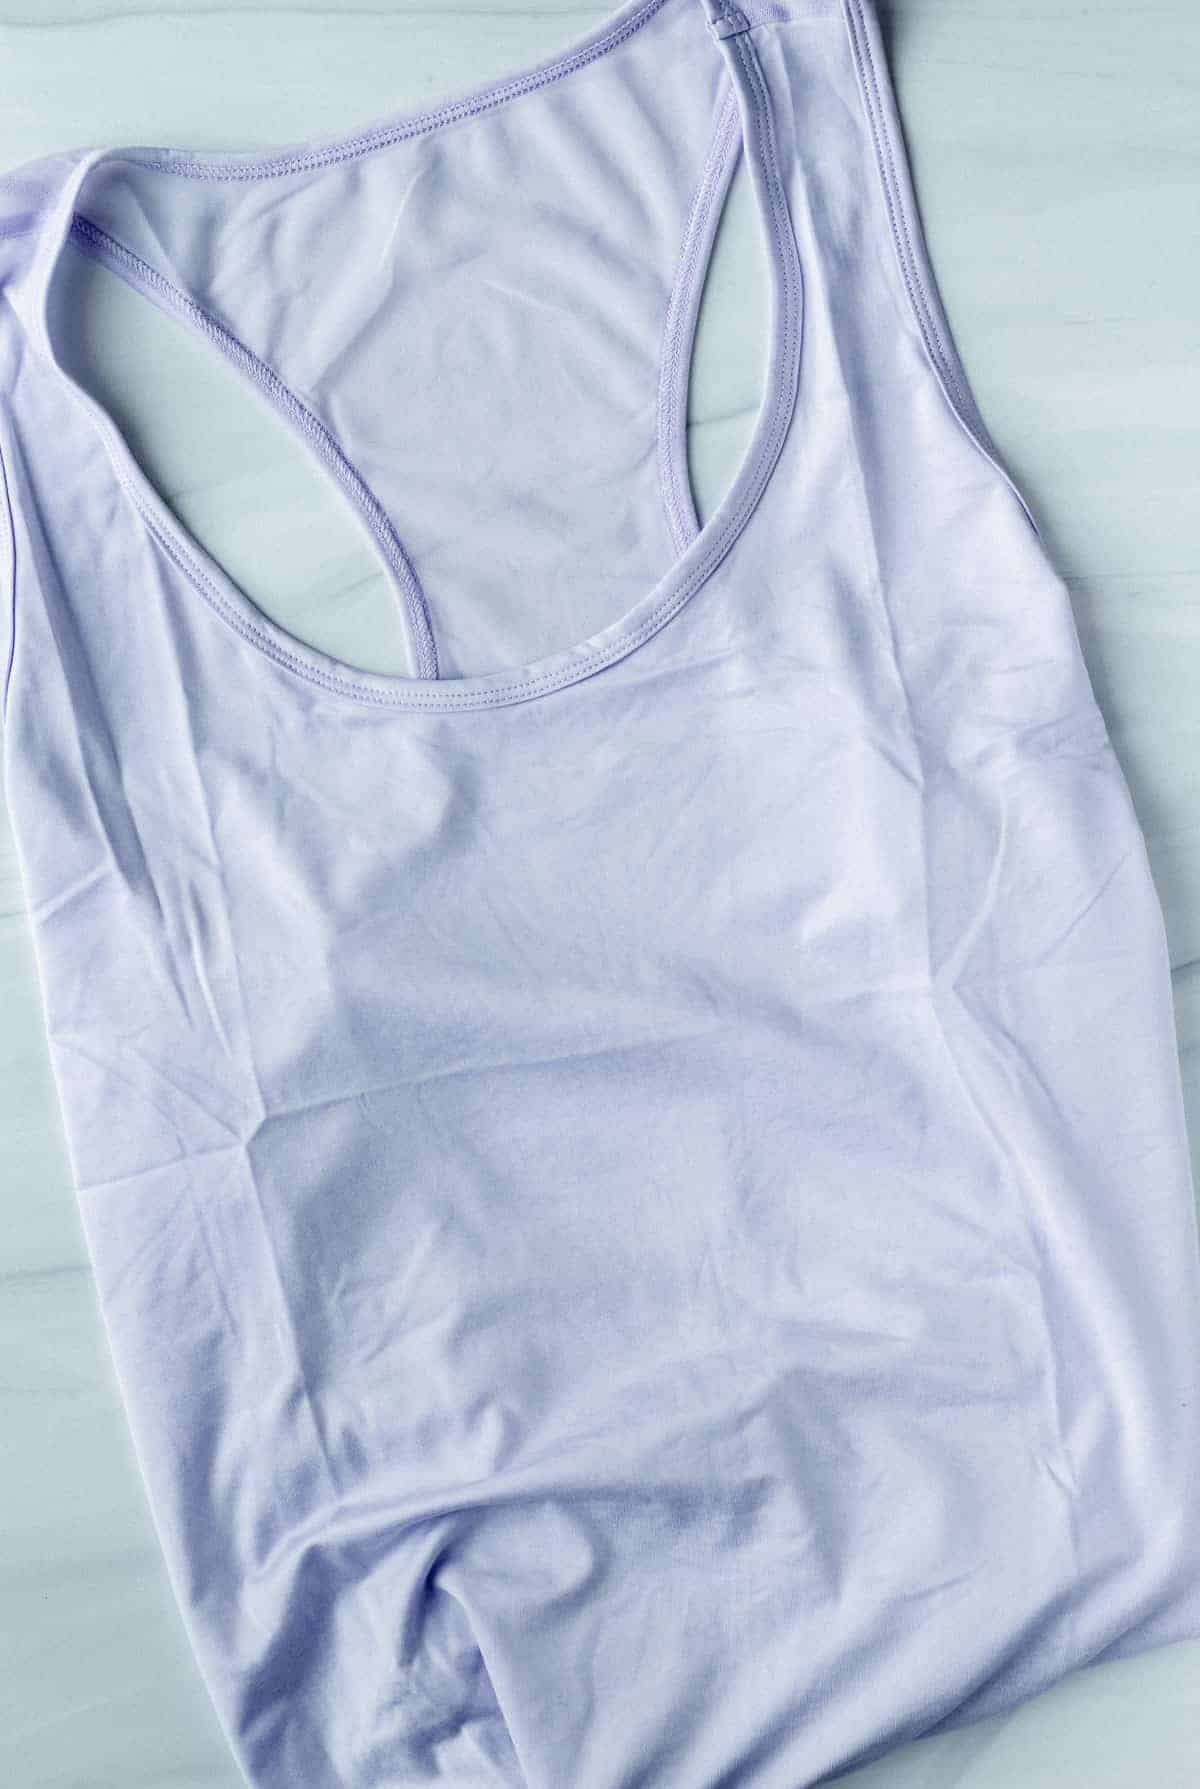 Jessica Simpson Excel Active Tank in lavender on a white background